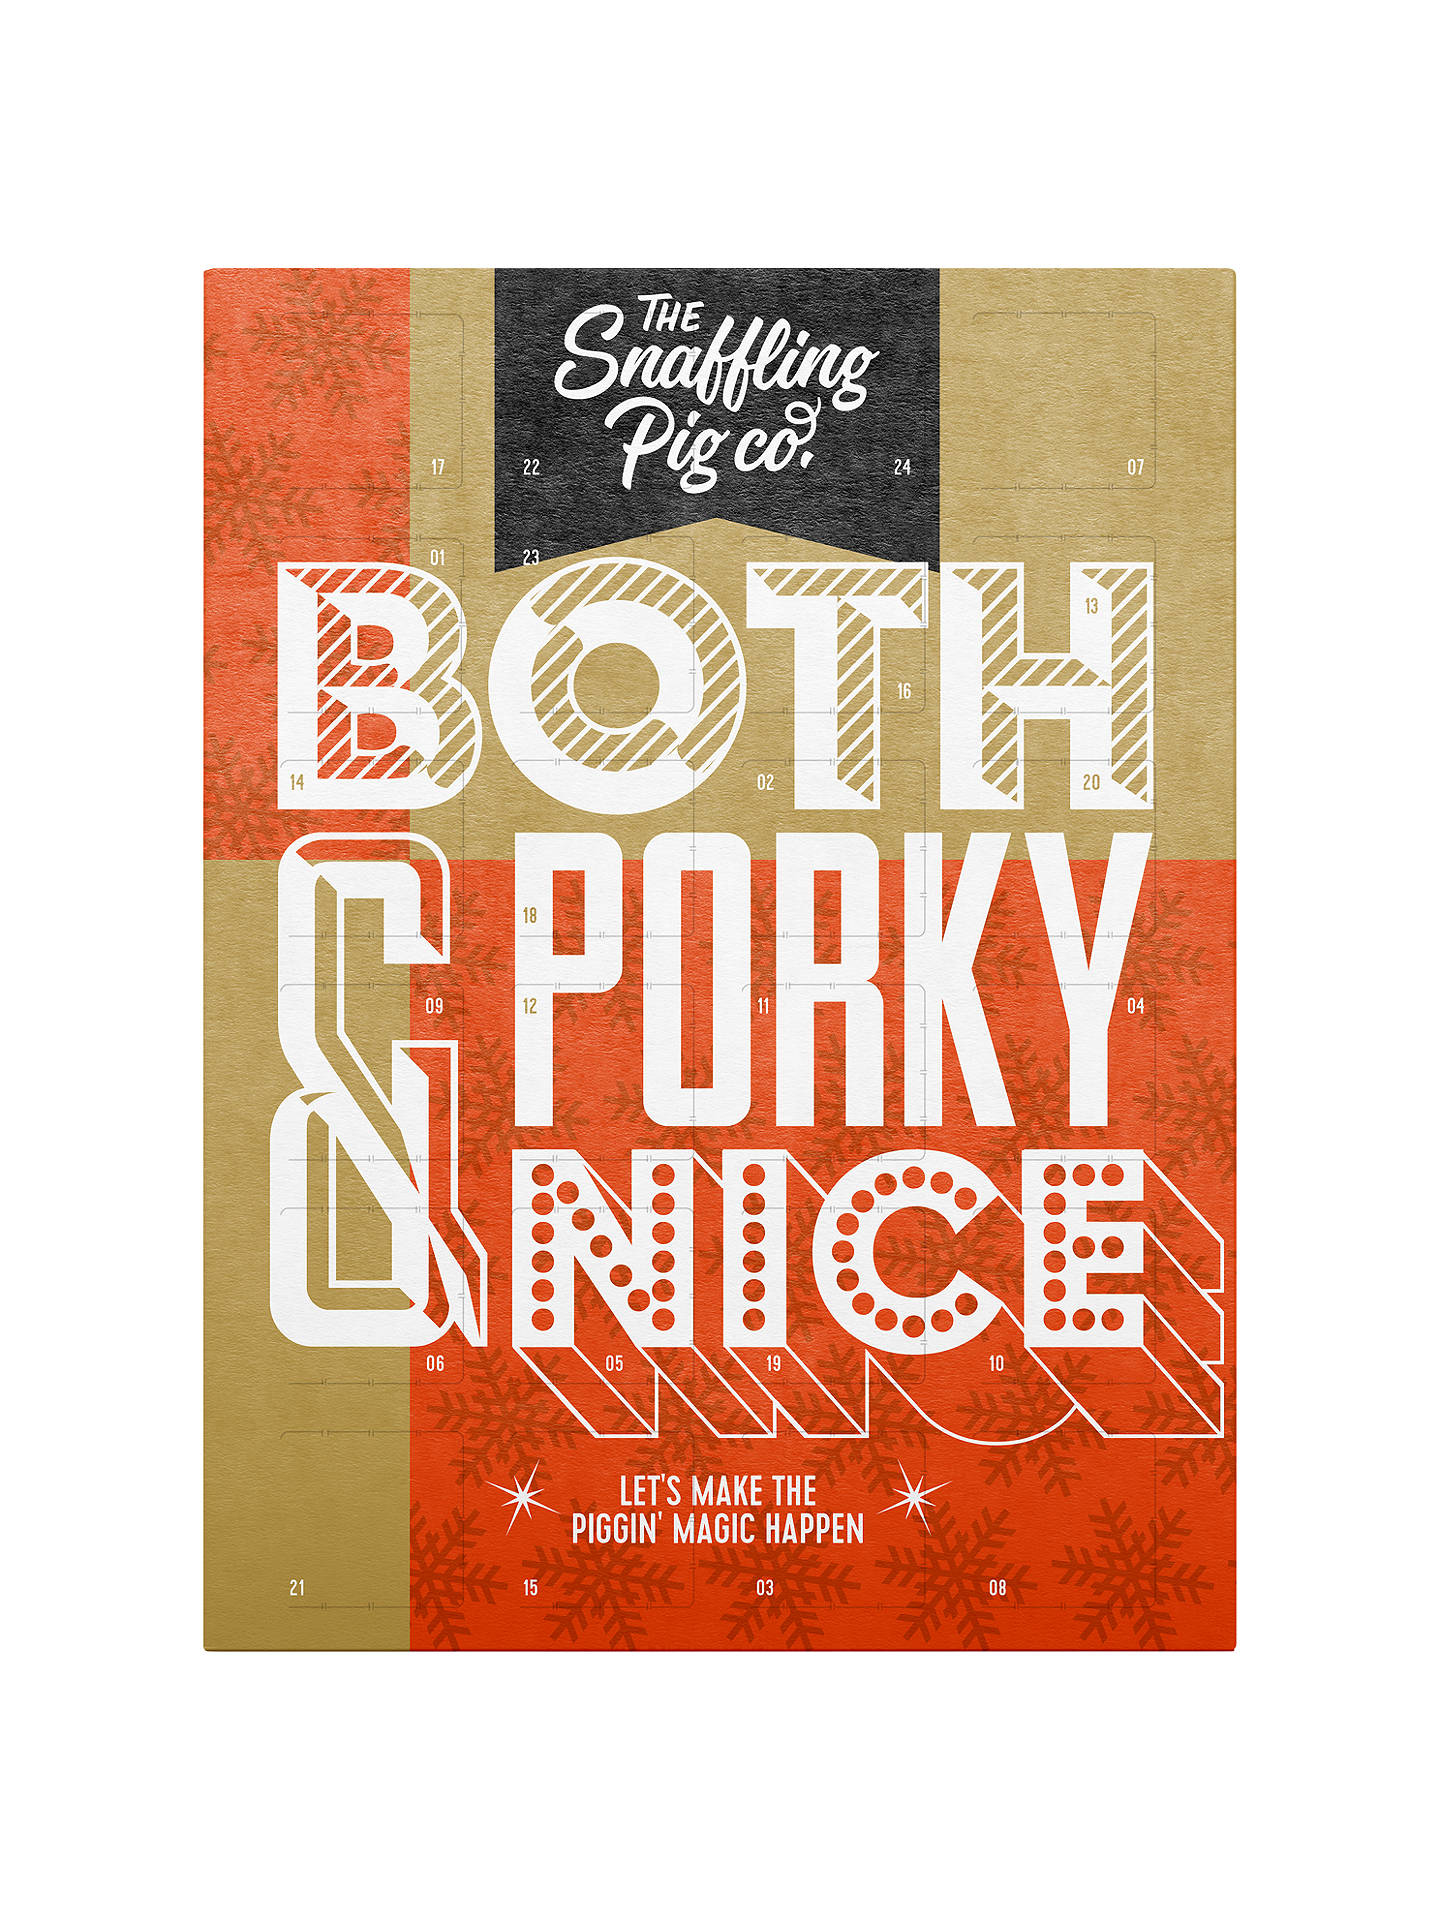 BuyThe Snaffling Pig Co. Pork Crackling Advent Calendar, 168g Online at johnlewis.com